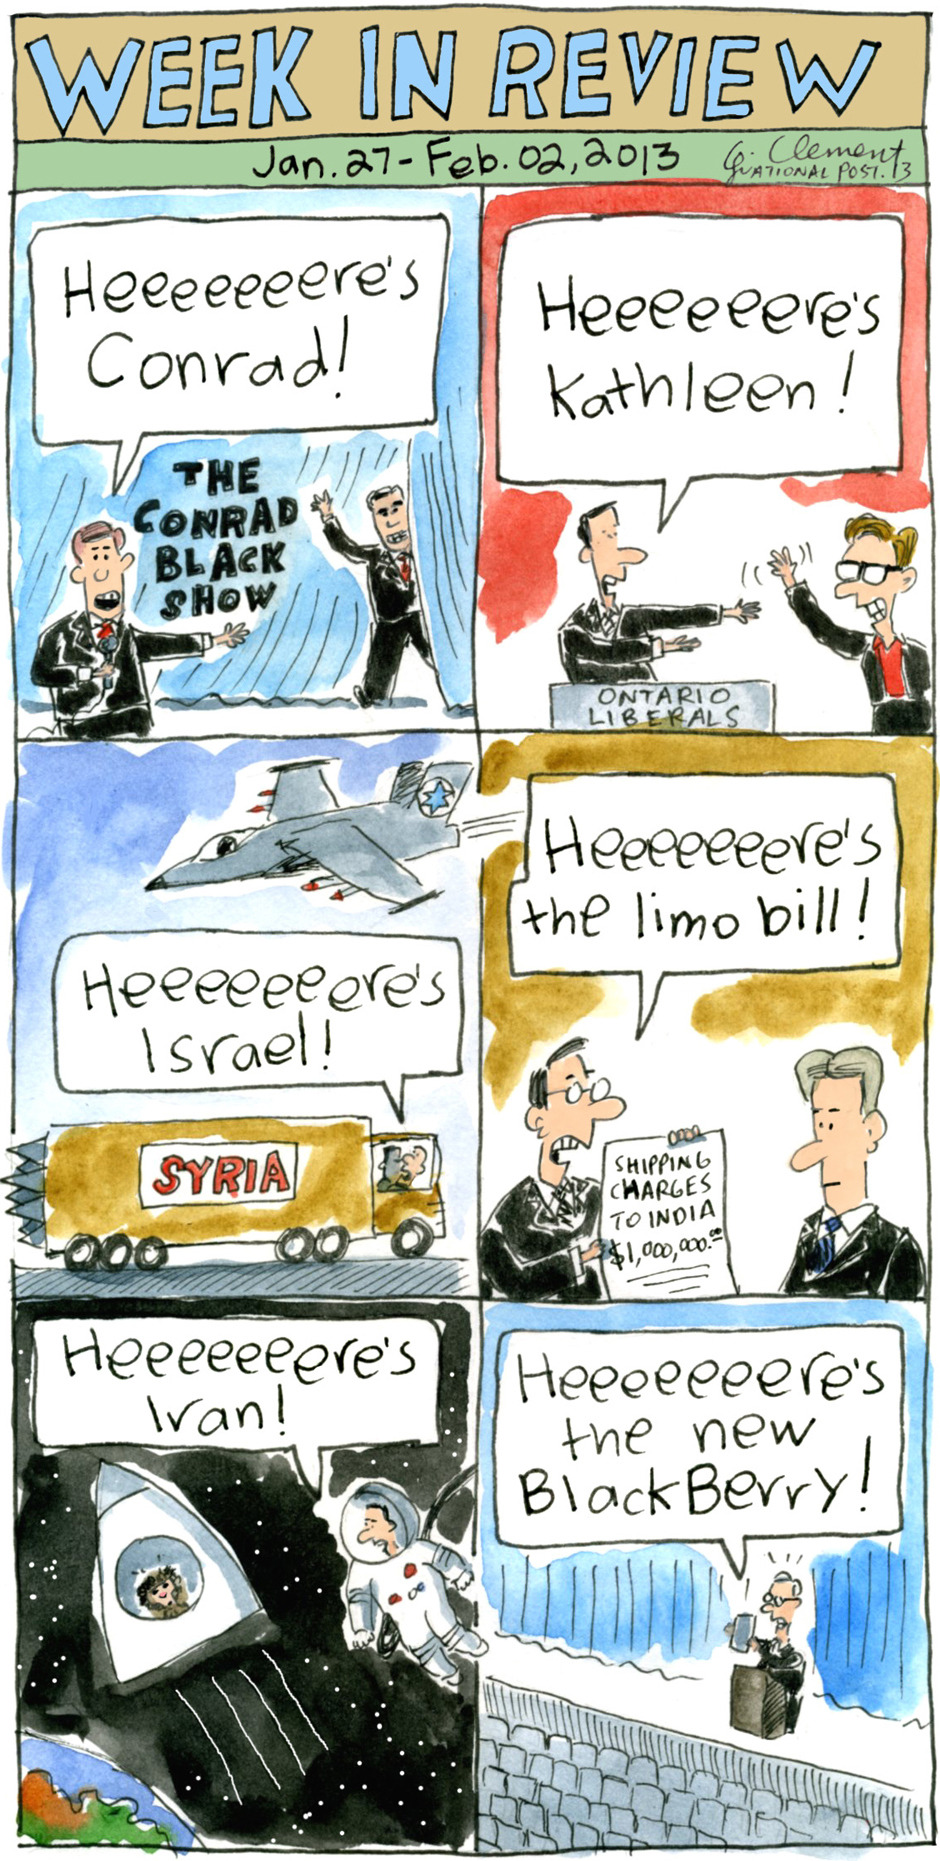 Political cartoonist Gary Clement's week in review